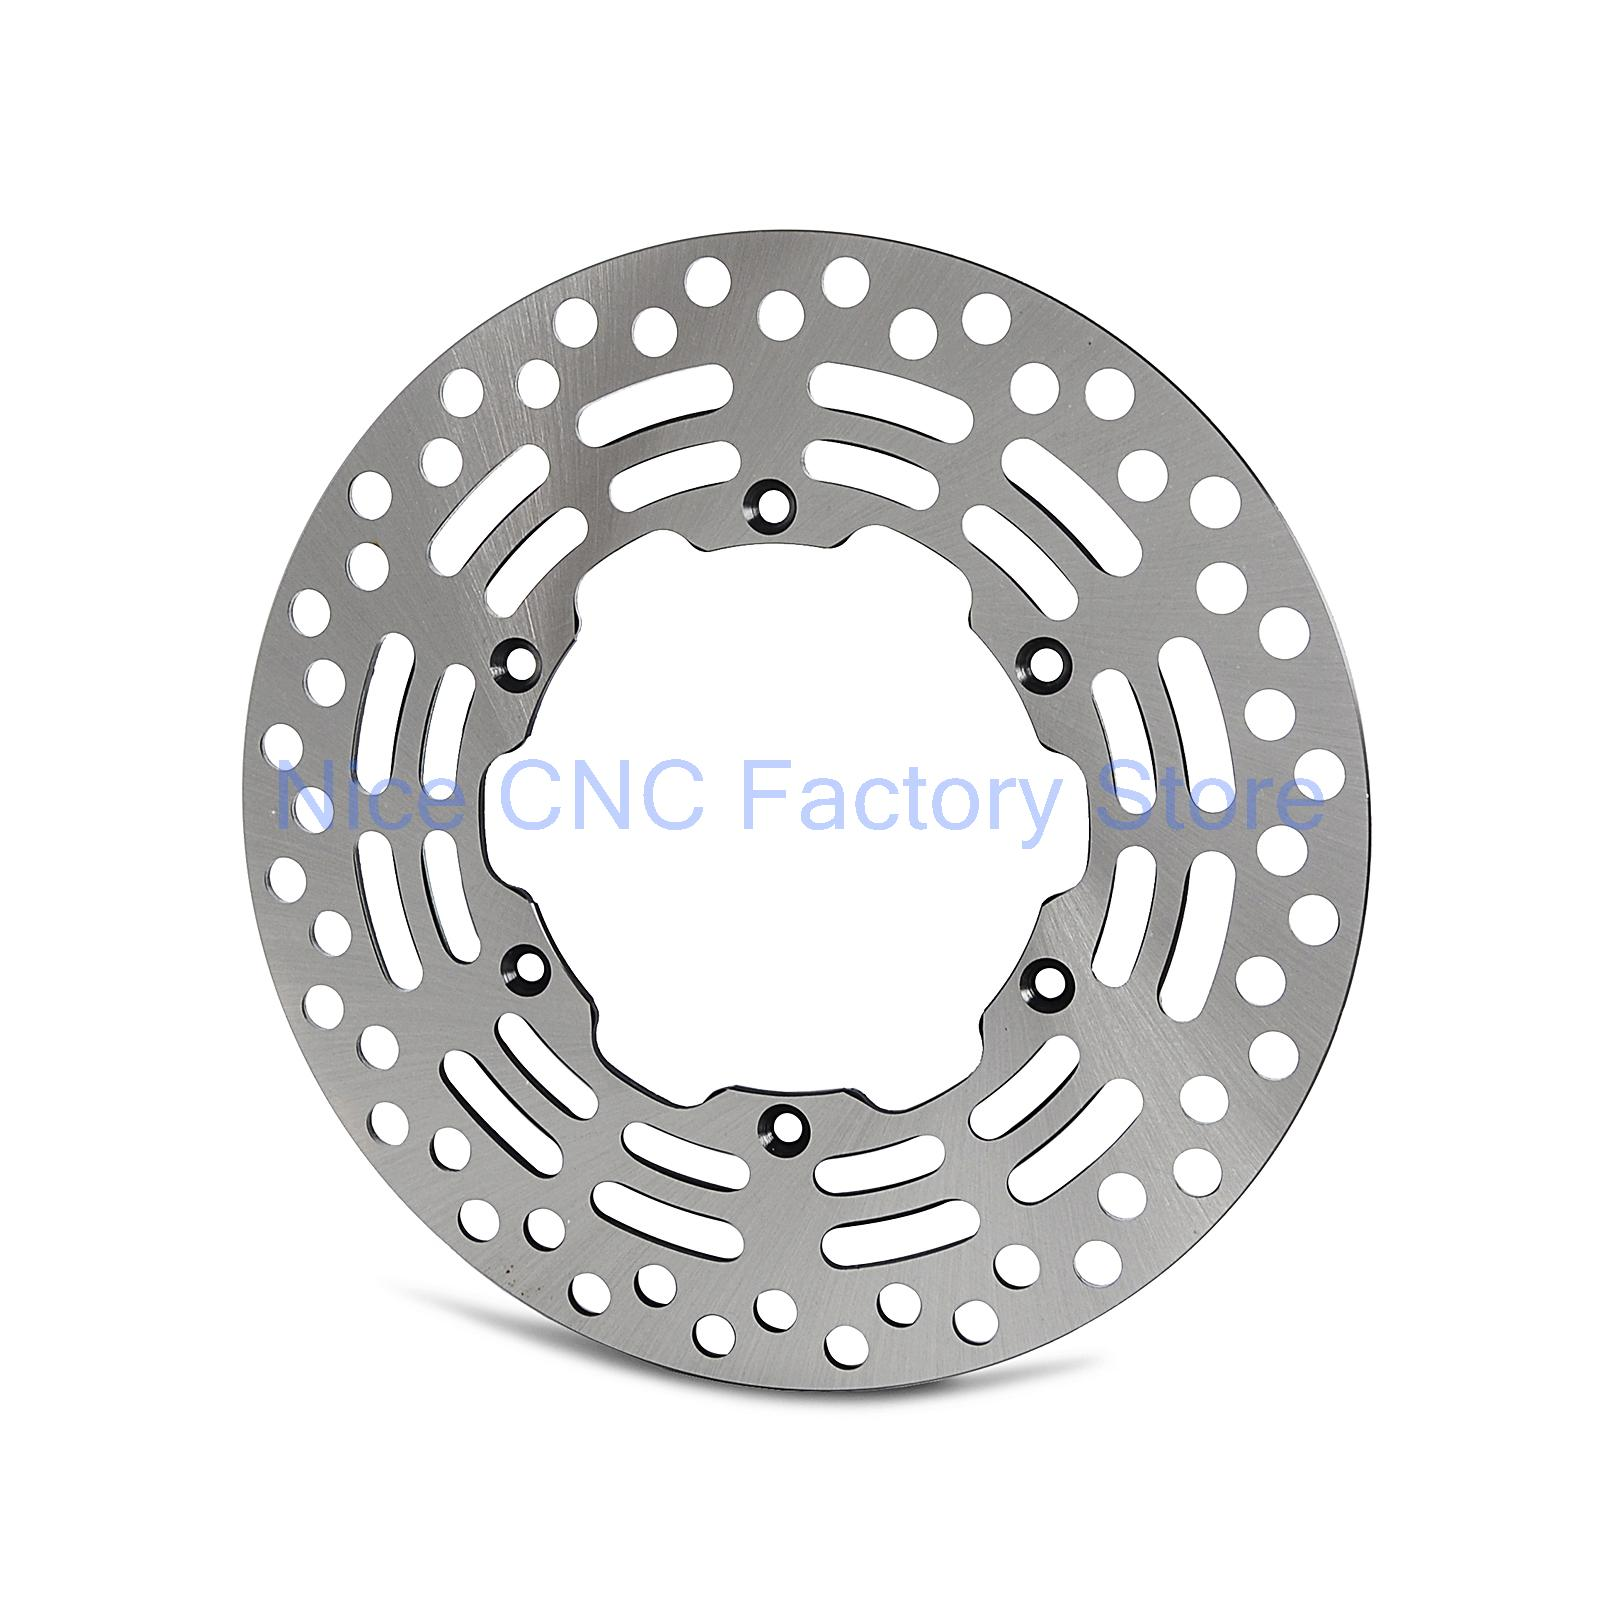 Front Brake Disc Rotor For Suzuki RM125 RM250 88-10 DR-Z250 01-07 DR-Z400 00-09 DR-Z 250 400 RMX250 89-99 Kawasaki KLX400 03-06 220mm rear brake disc rotor for suzuki rm125 rm 125 1988 1995 rm250 250 1996 1999 rmx250 rmx drz400 drz400 srz400s drz400e